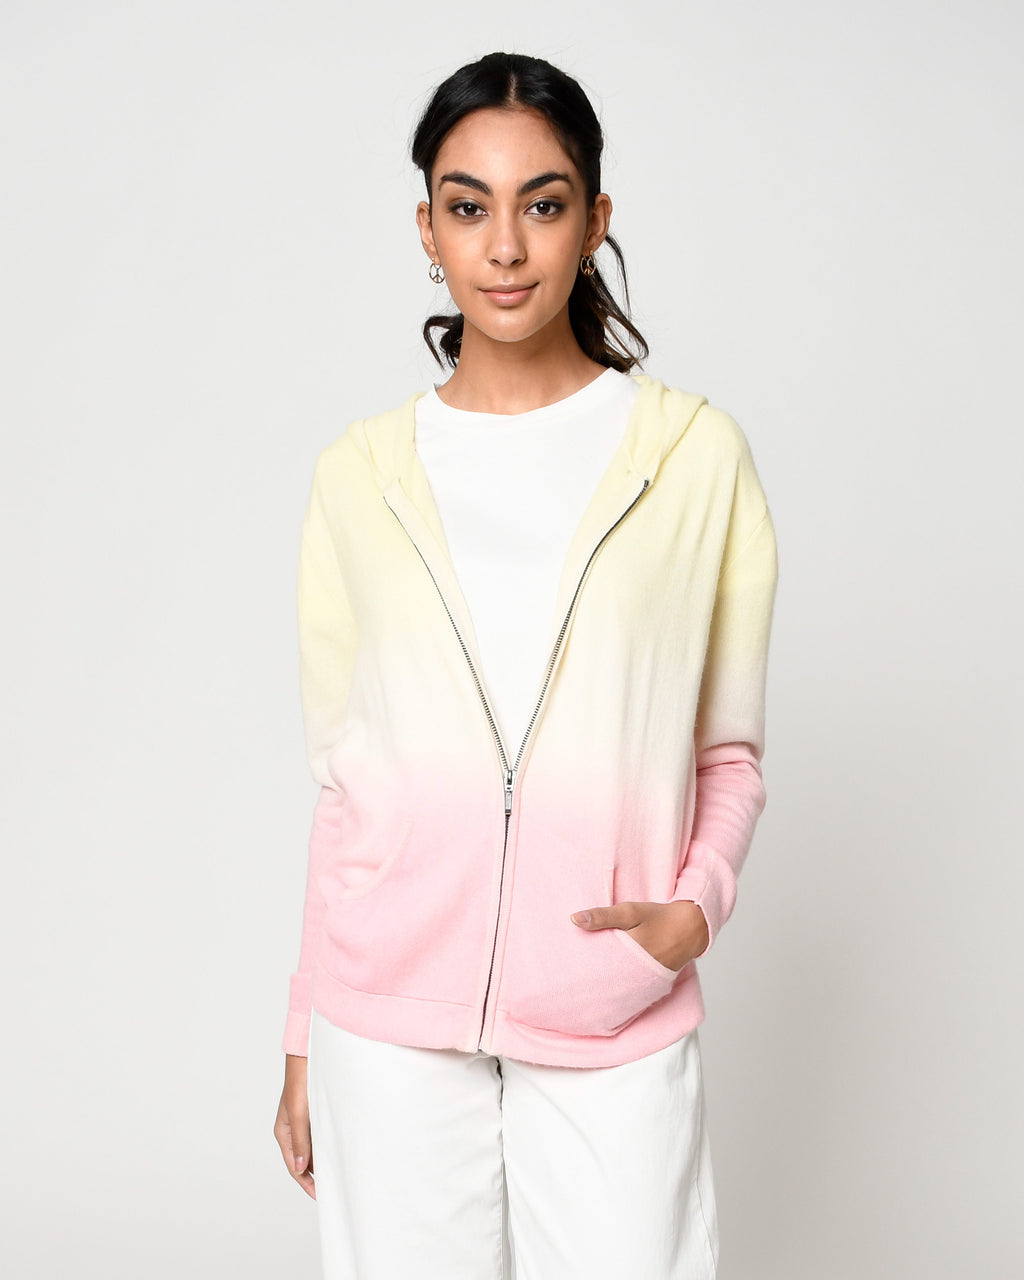 CT18653 - DIP DYE CASHMERE ZIP UP HOODIE - tops - knitwear - Crafted from 100% cashmere, this zip up hoodie is hand dyed in yellow and pink ombre. Add 1 line break Stylist Tip: Pair with white jeans during a chilly summer night.